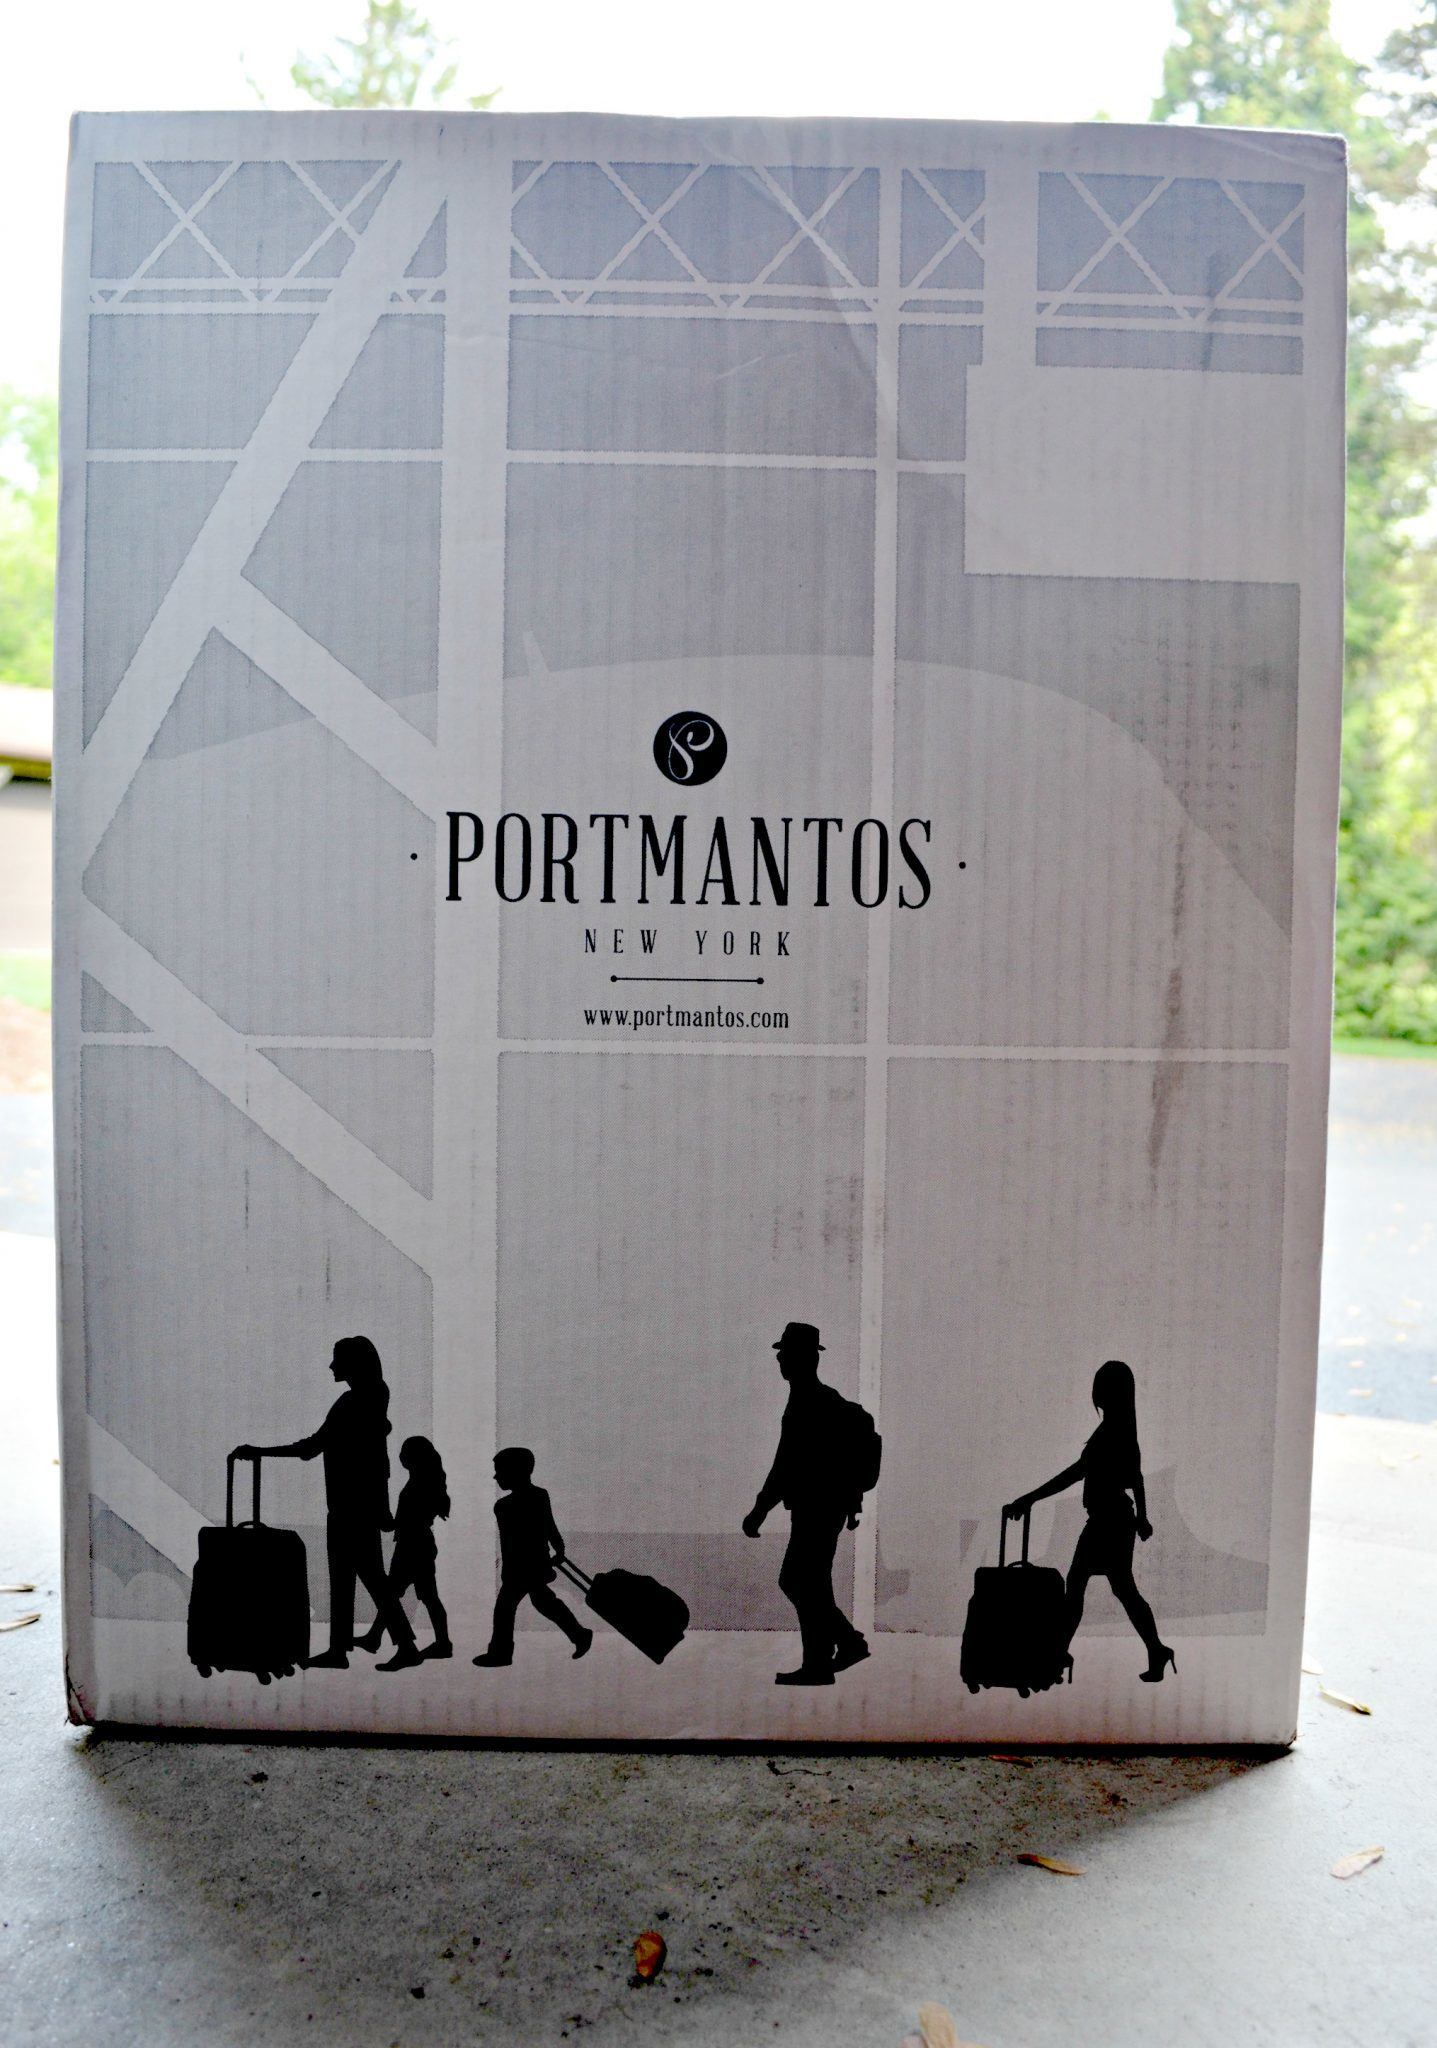 Boutique Free Tours Portmantos Online Travel Boutique Offers Luxury Service